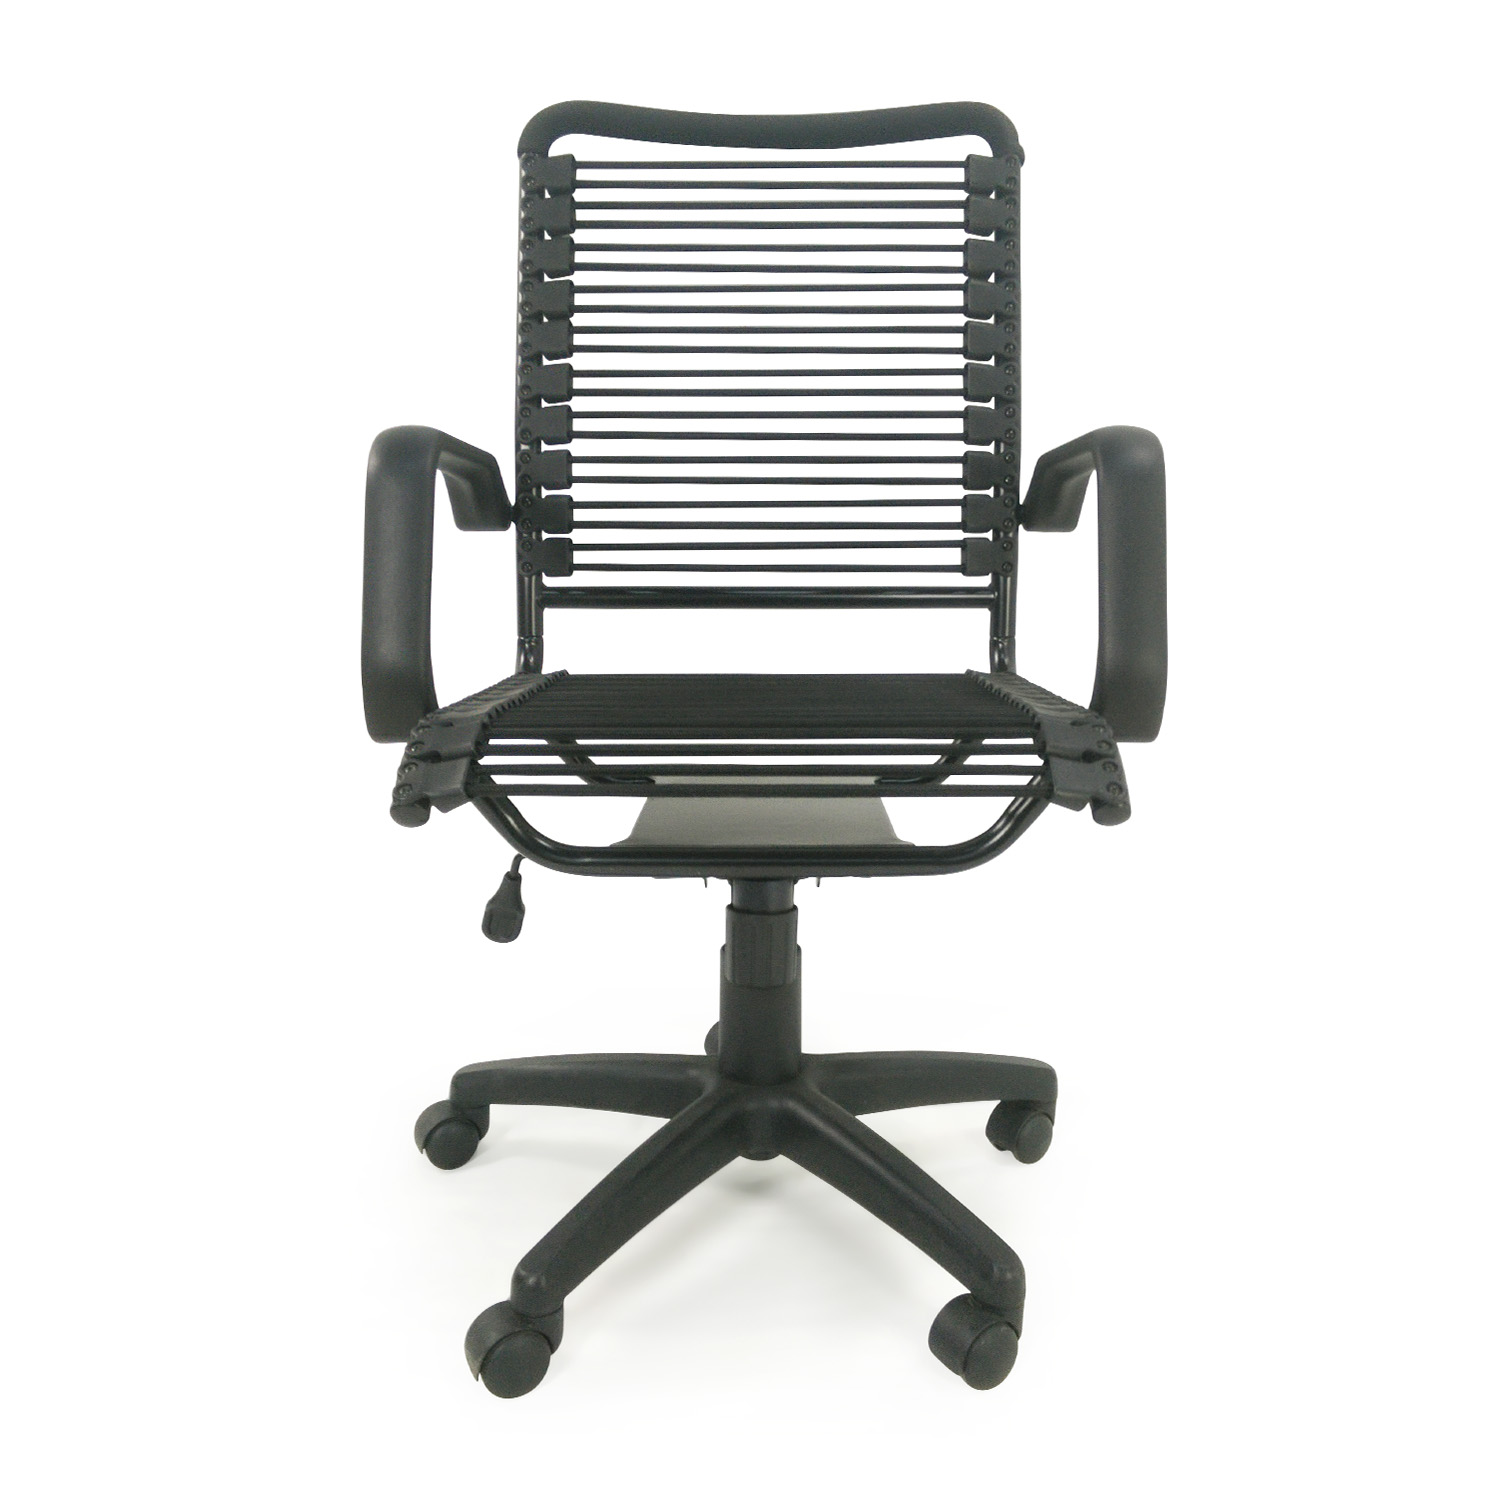 Euro Style Euro Style Bradley Bungie Office Chair price